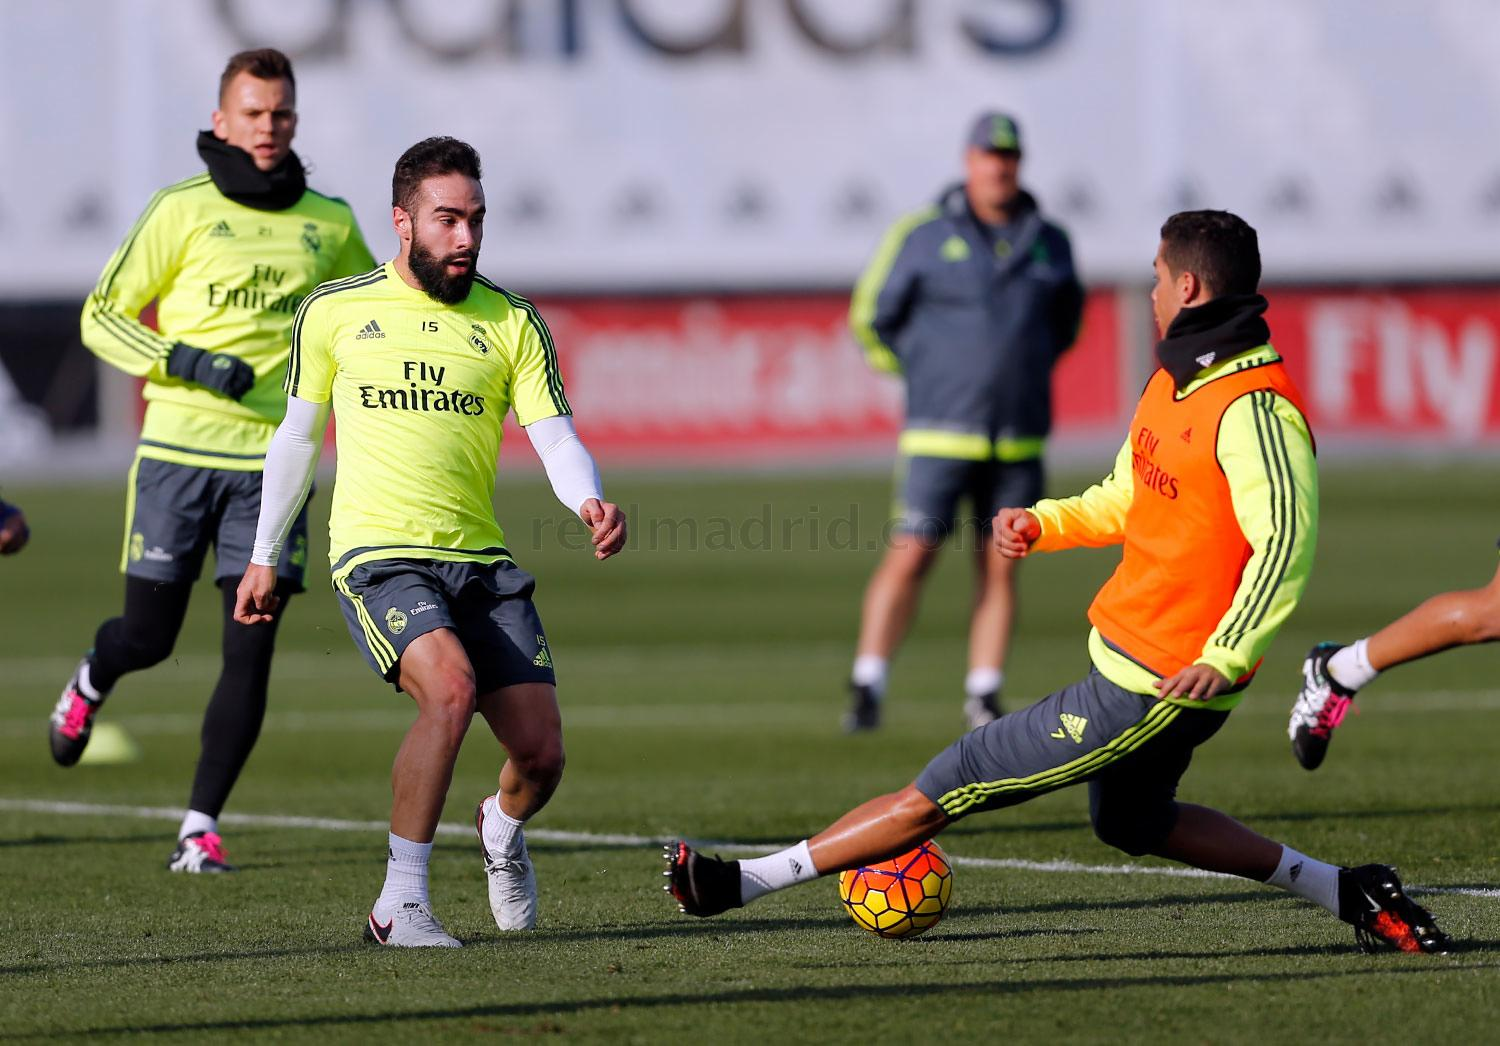 Real Madrid - Entrenamiento del Real Madrid - 28-12-2015